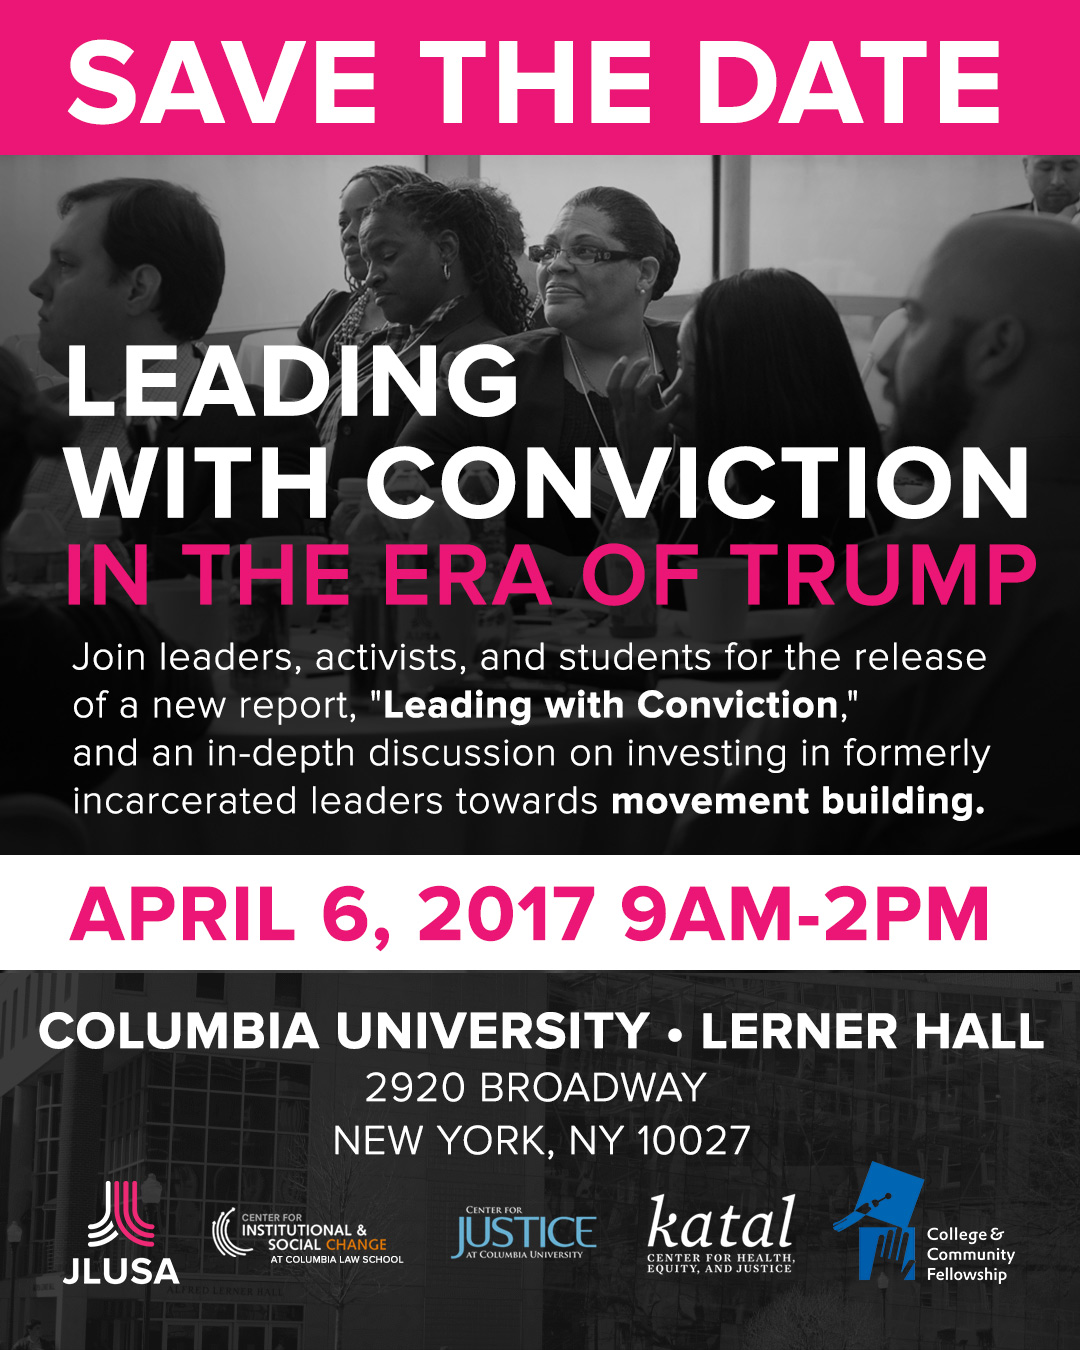 Leading with Conviction in the Era of Trump - April 6th, 2017